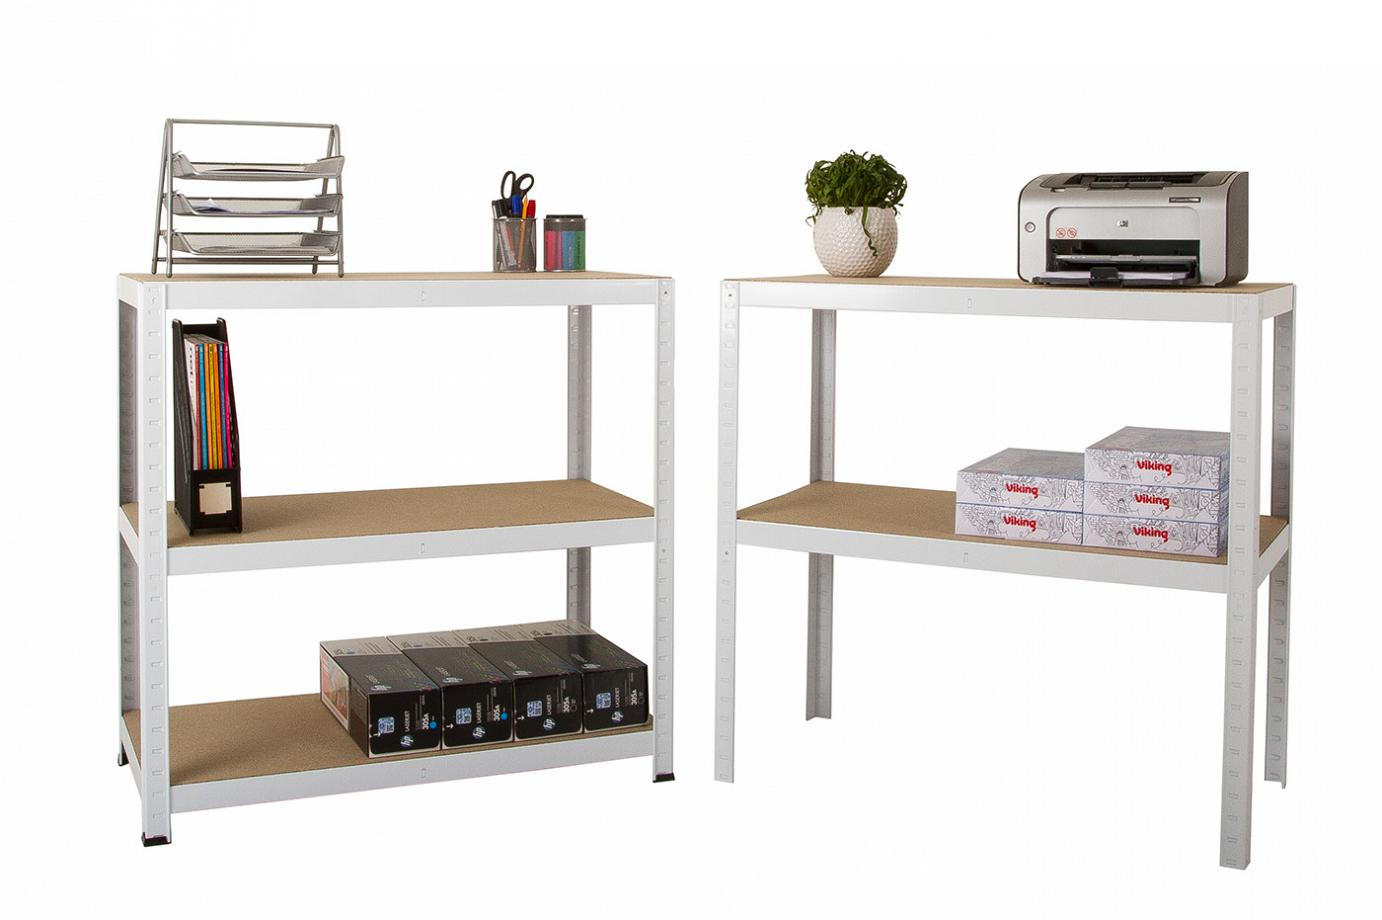 Clicka Shelving split into bench